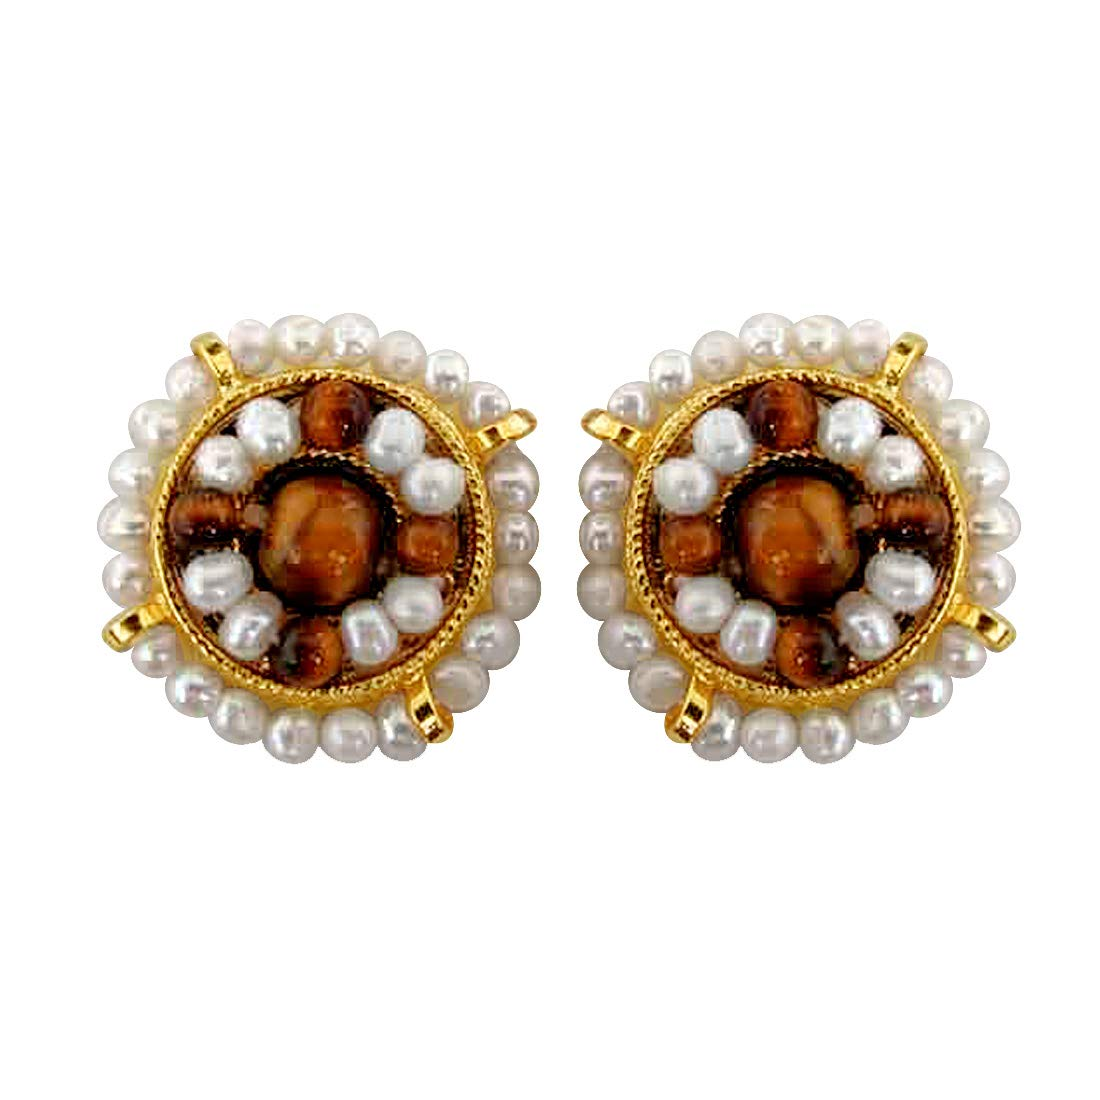 You're My World - Freshwater Pearl, Tiger Eye & Gold Plated Kuda Jodi Earrings for Women (SE43)